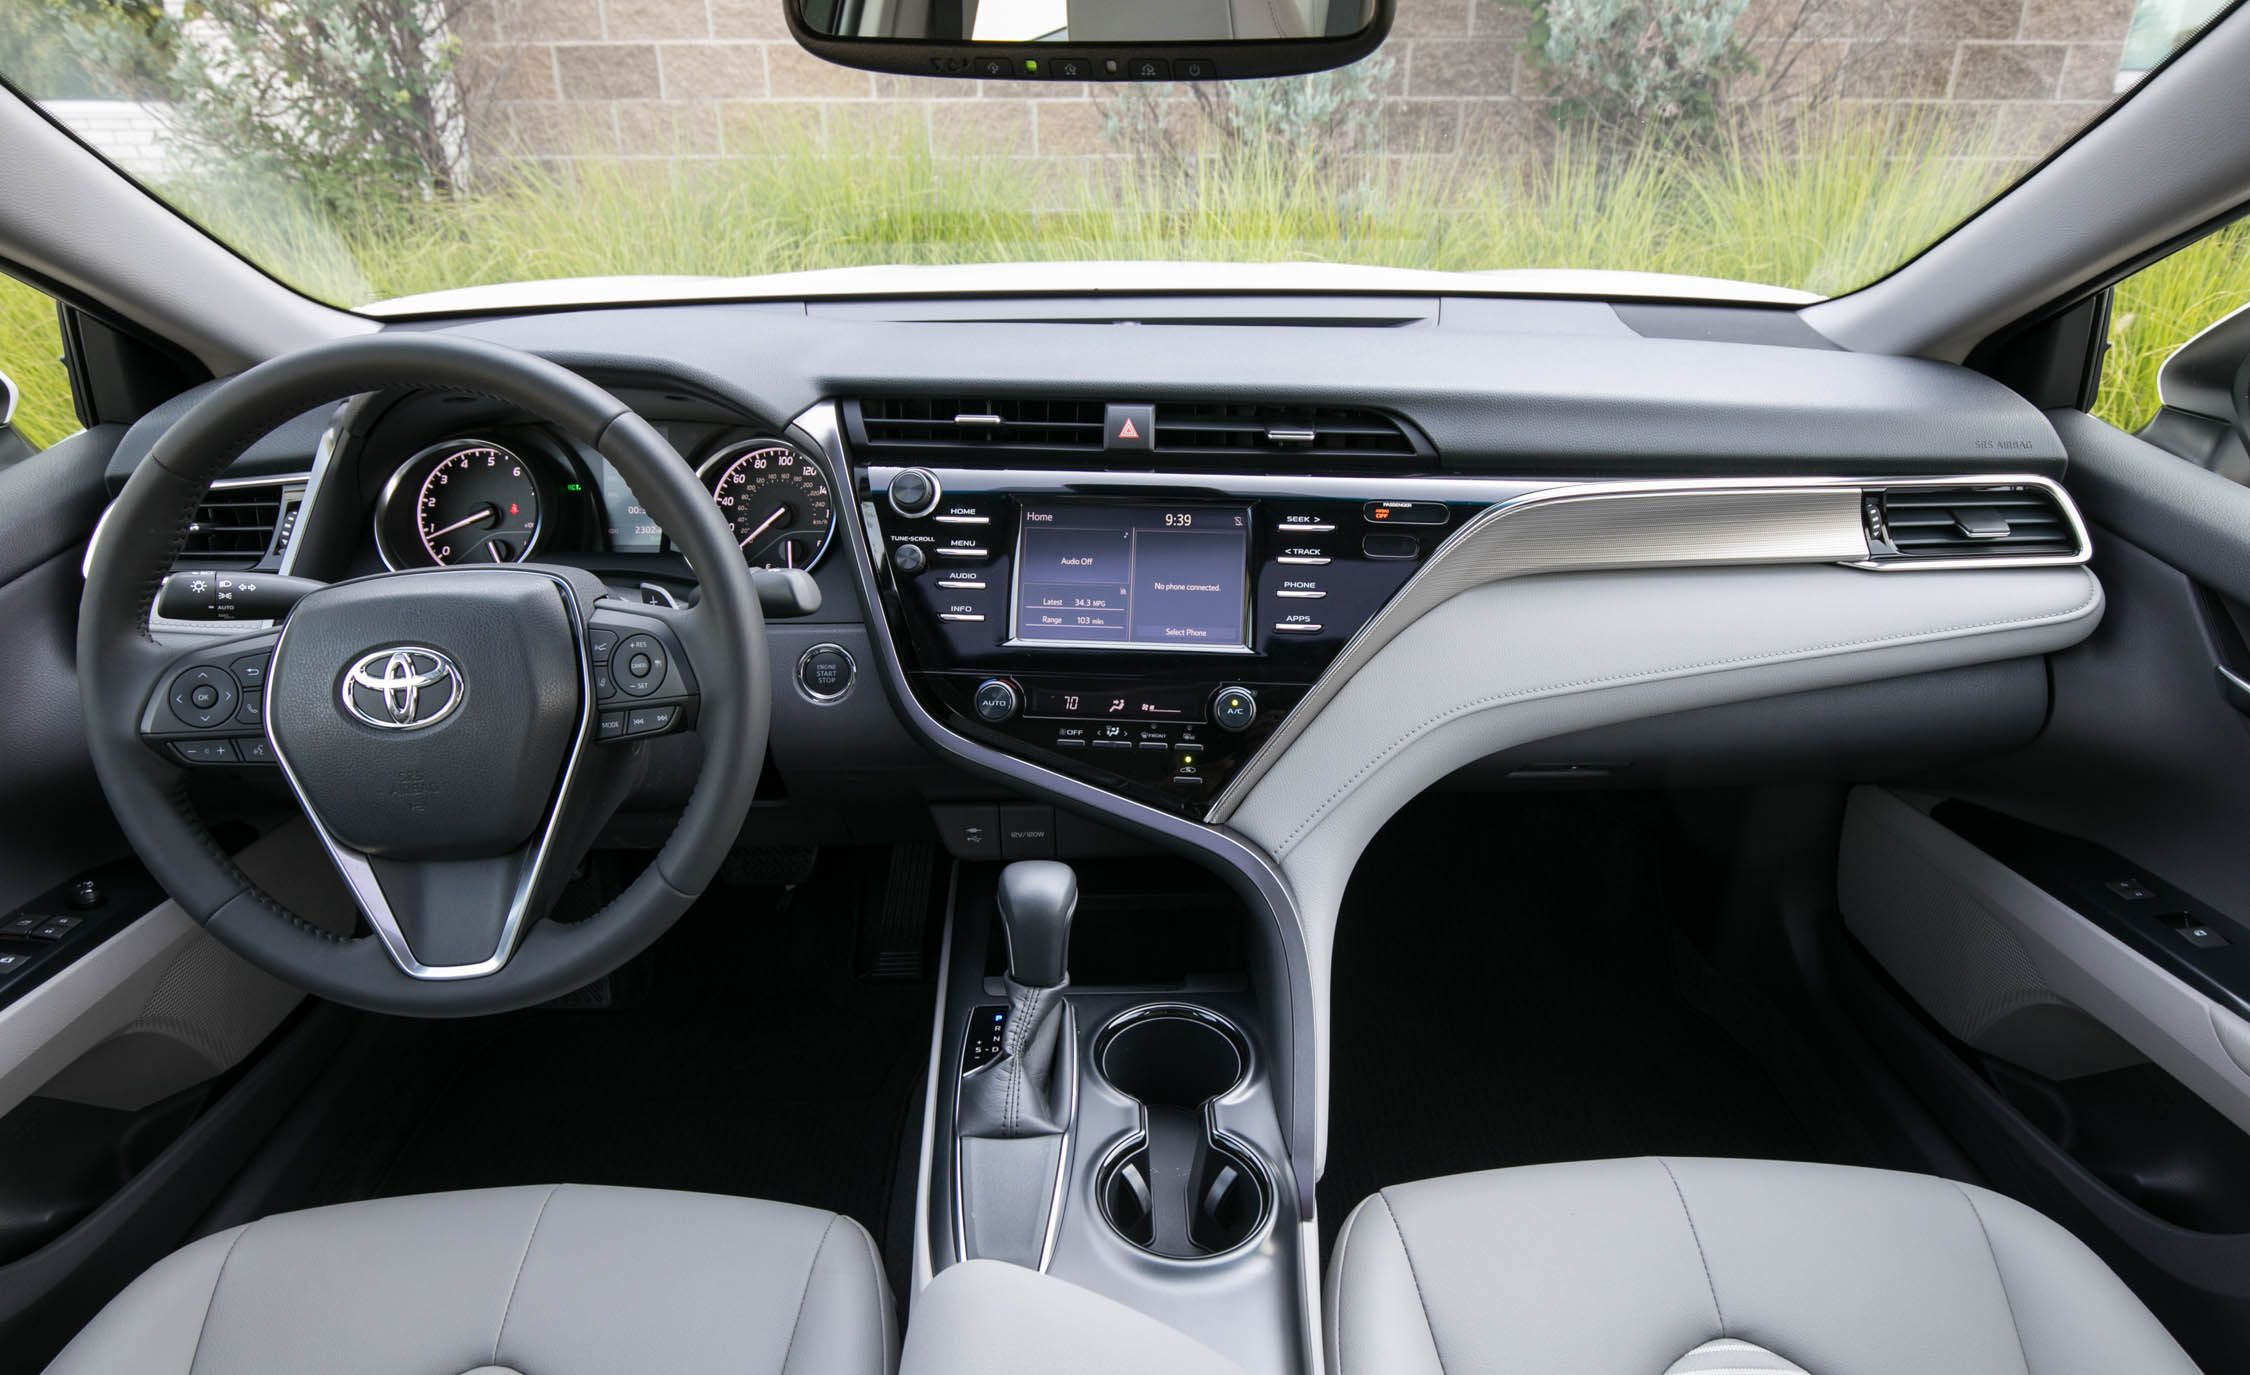 interior all new camry 2016 toyota yaris trd sportivo philippines 2020 reviews price photos and specs up front the driver is greeted with a dashboard that features clearly marked gauges easy to reach controls rich materials